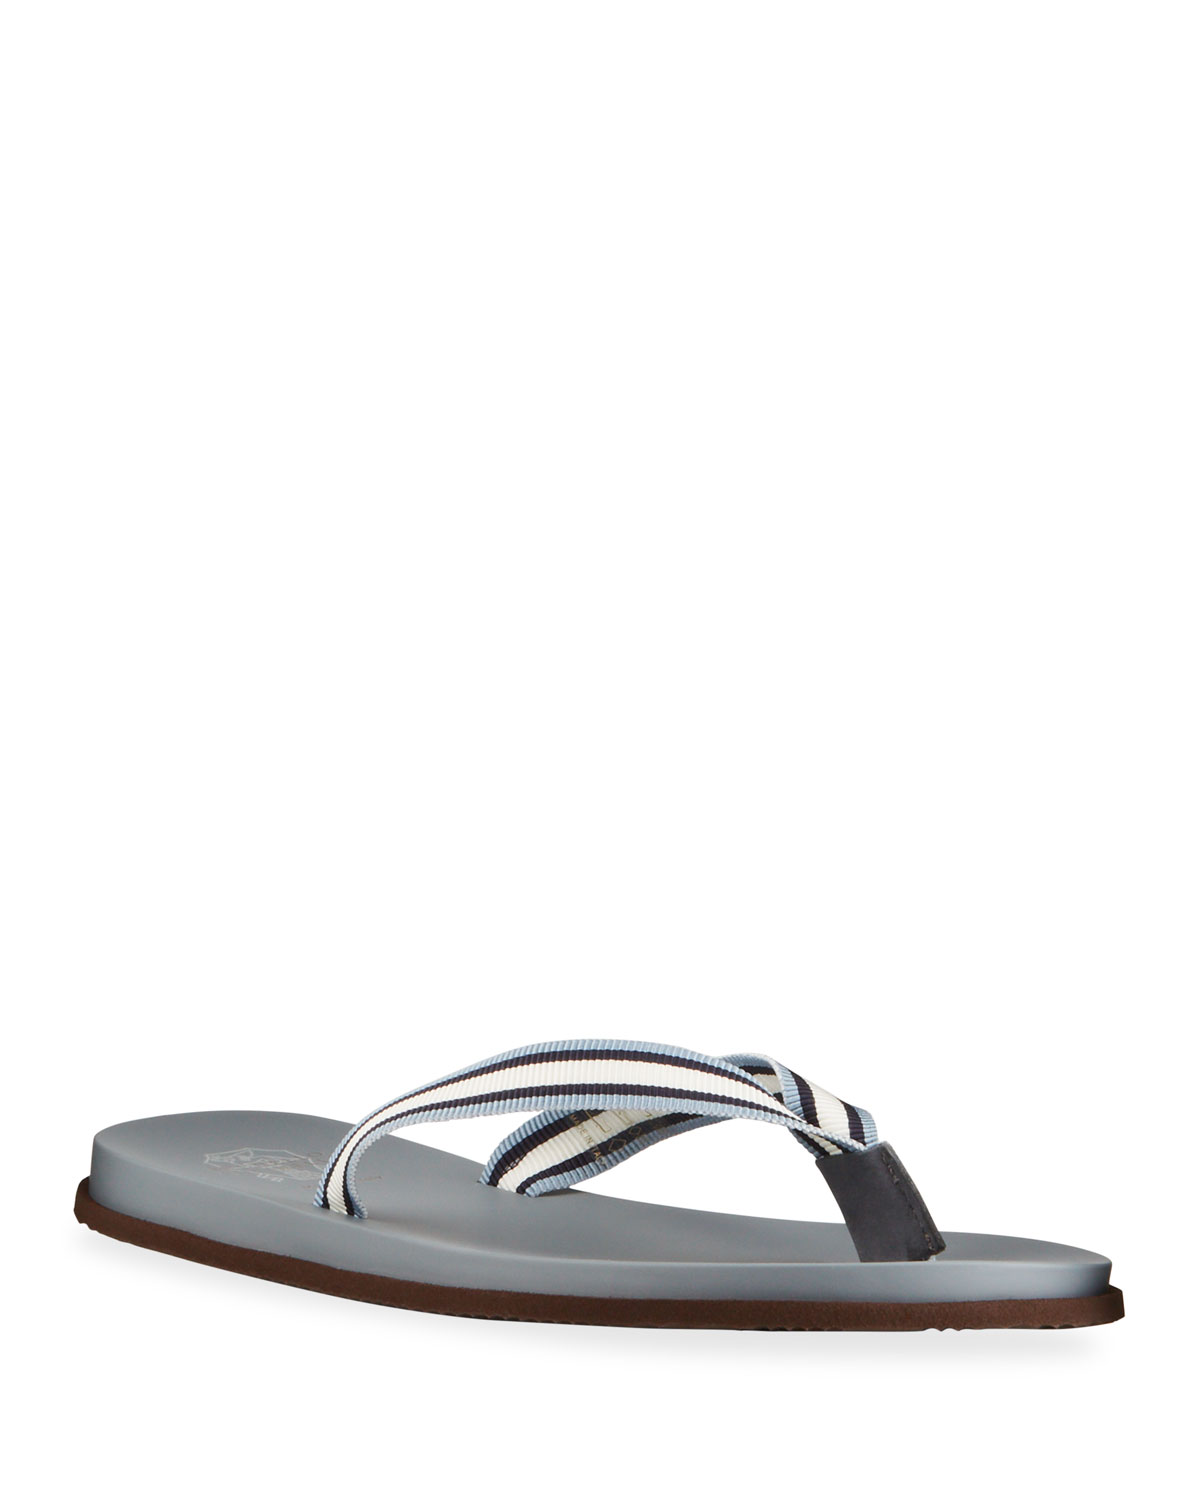 Brunello Cucinelli MEN'S STRIPED FLIP FLOPS